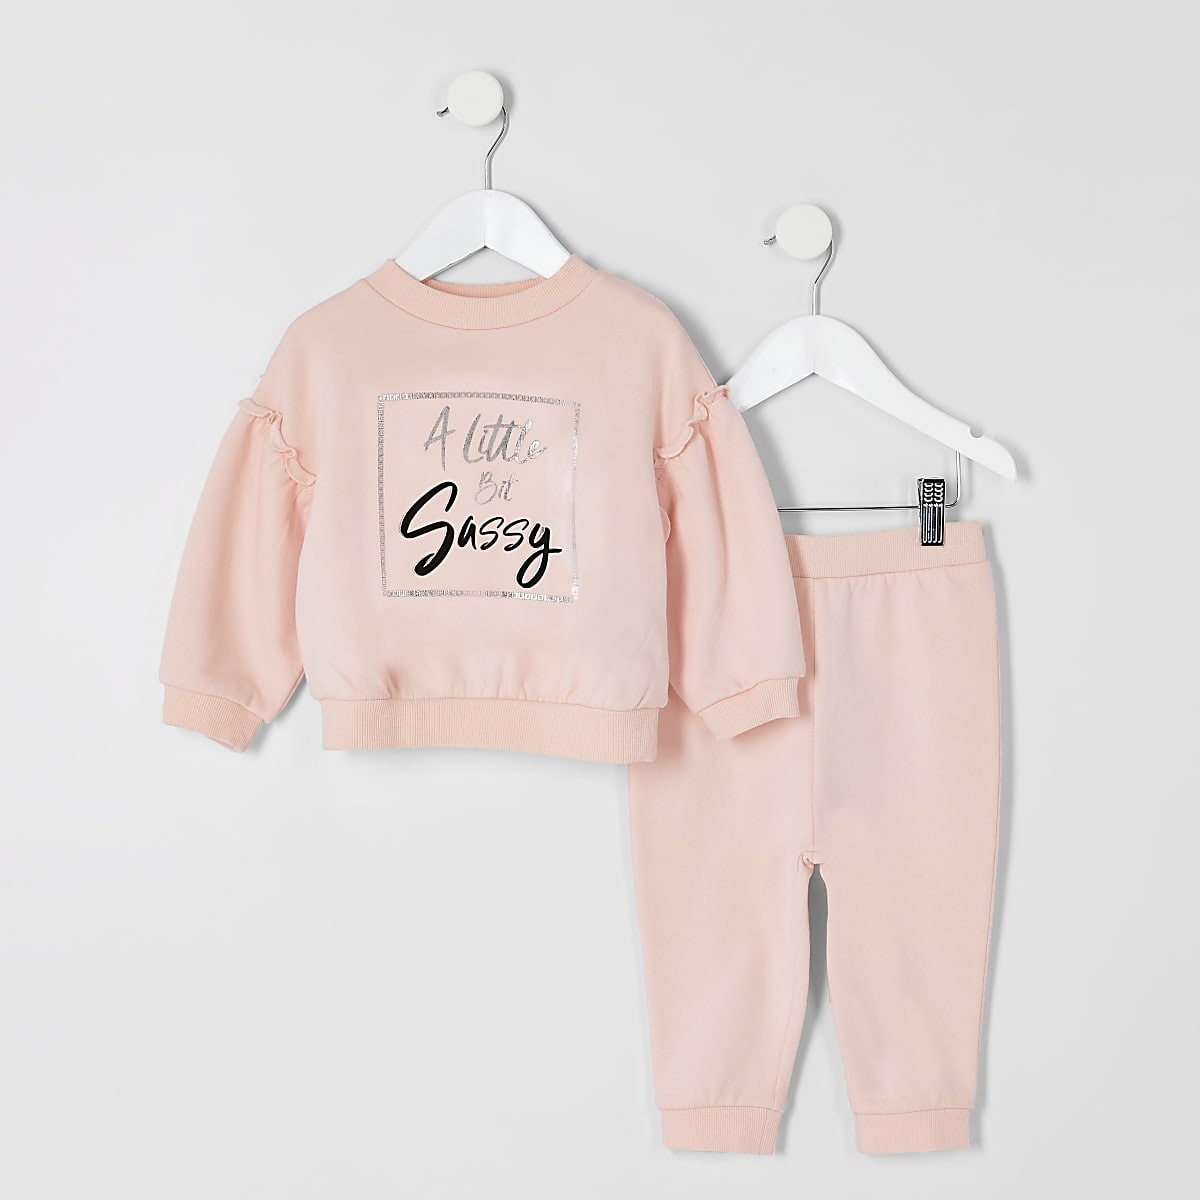 Mini girls pink 'sassy' sweatshirt outfit